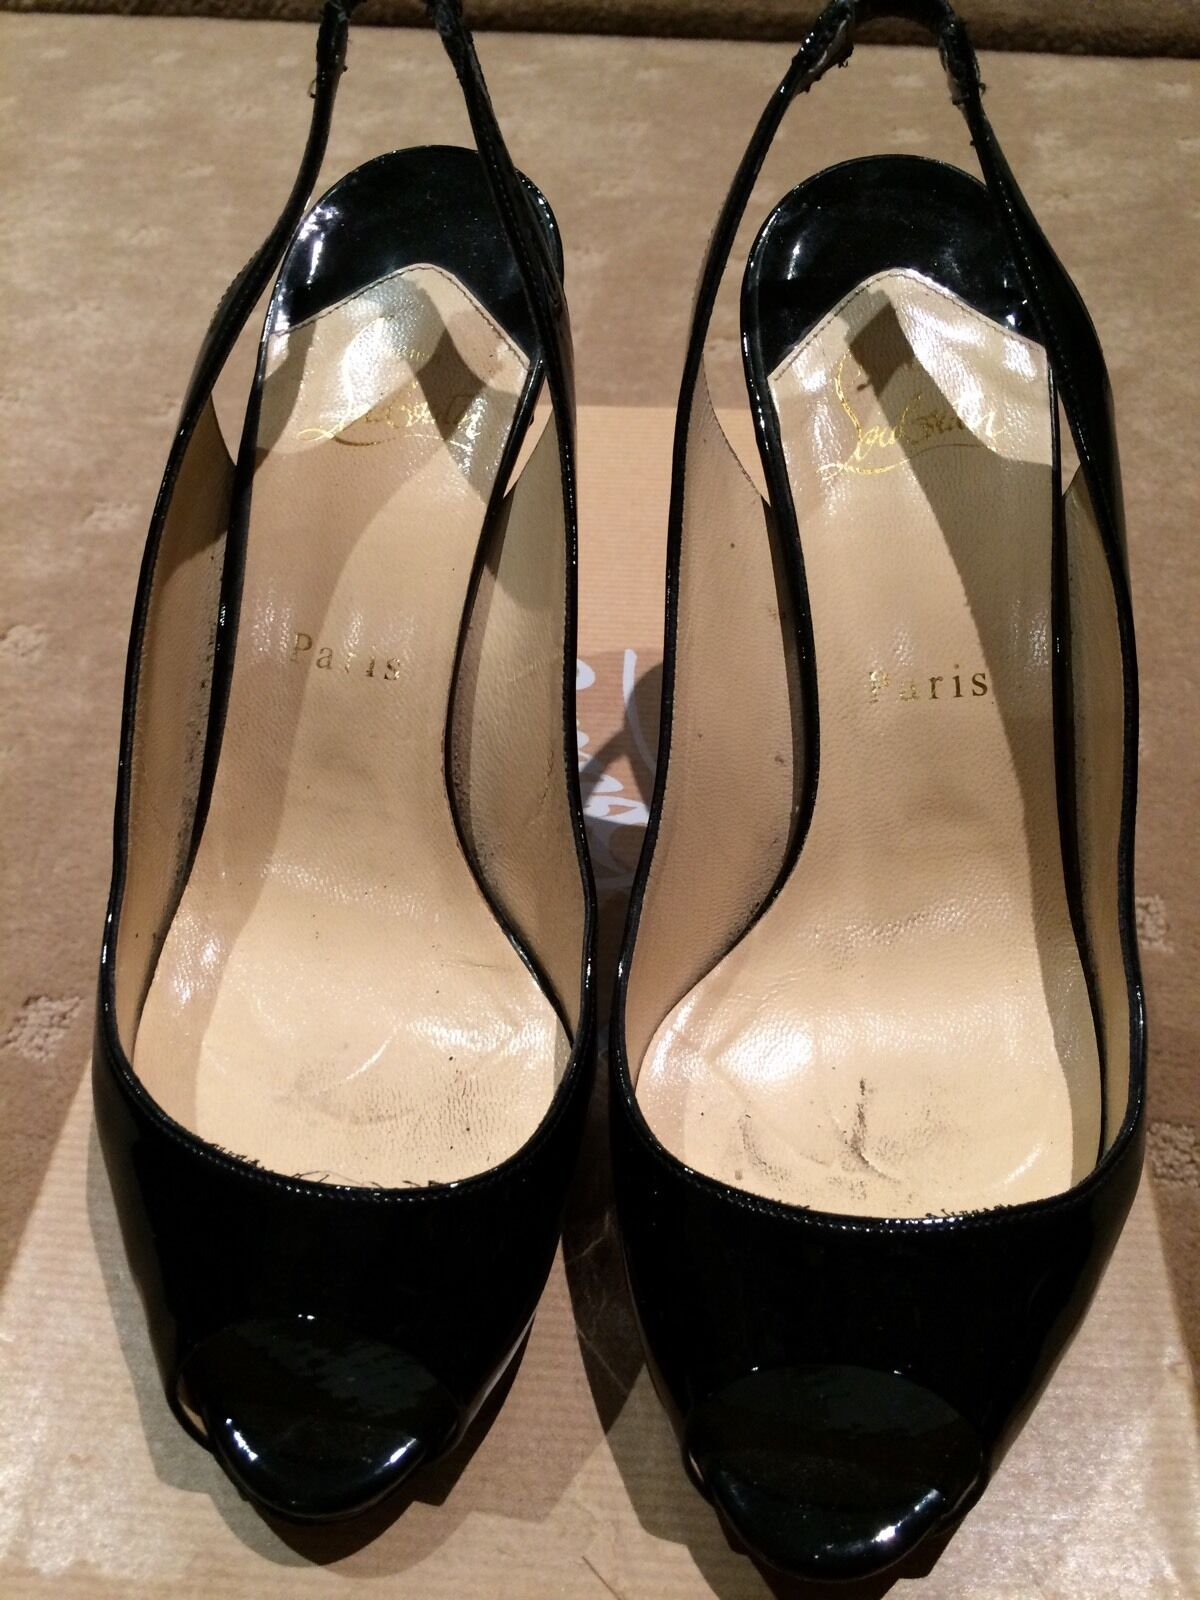 CHRISTIAN LOUBOUTIN LADIES noir PATENT SLING BACK  Taille 38   1200+  GREAT COND